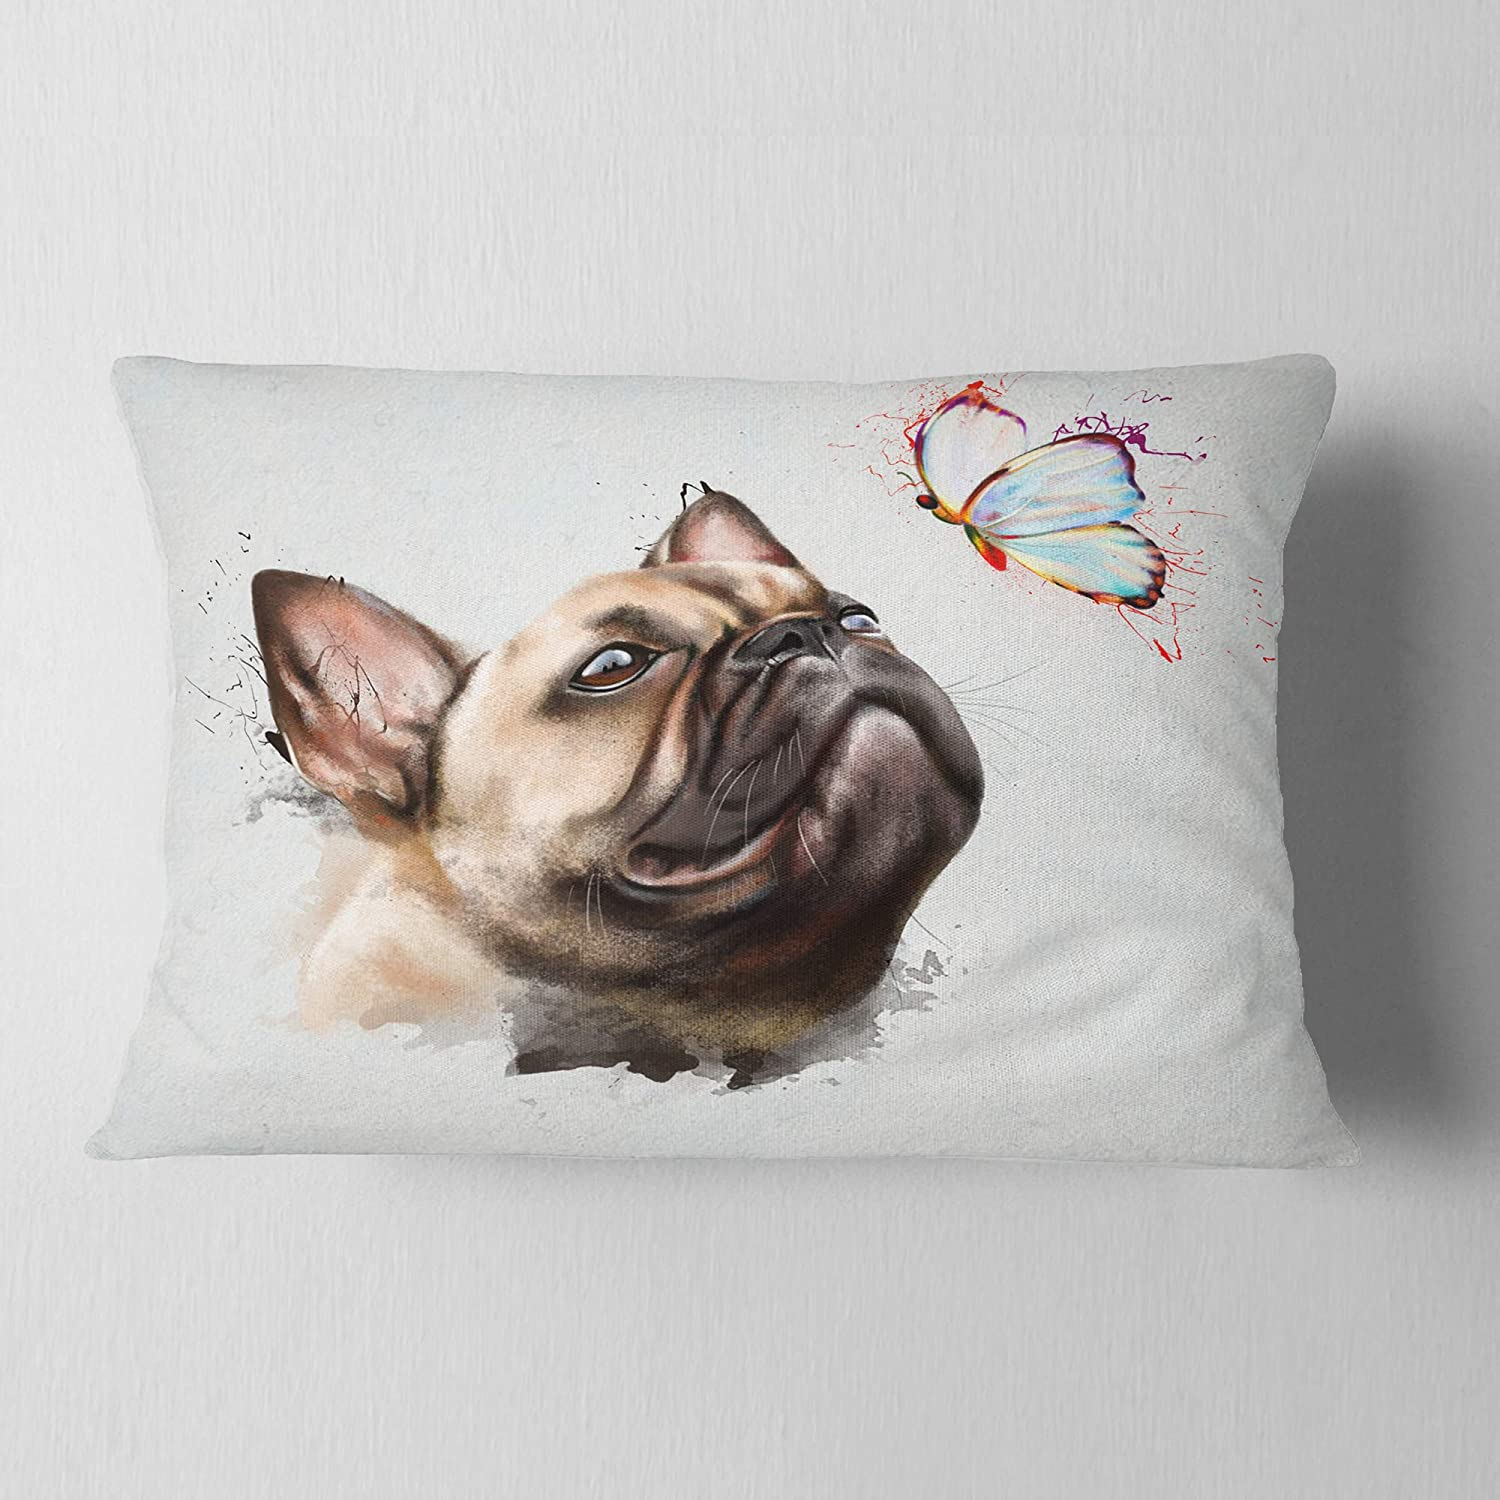 Designart CU13139-12-20 Funny French Dog with Butterfly' Animal Lumbar Cushion Cover for Living Room, Sofa Throw Pillow 12 in. x 20 in. in, Insert Printed On Both Side